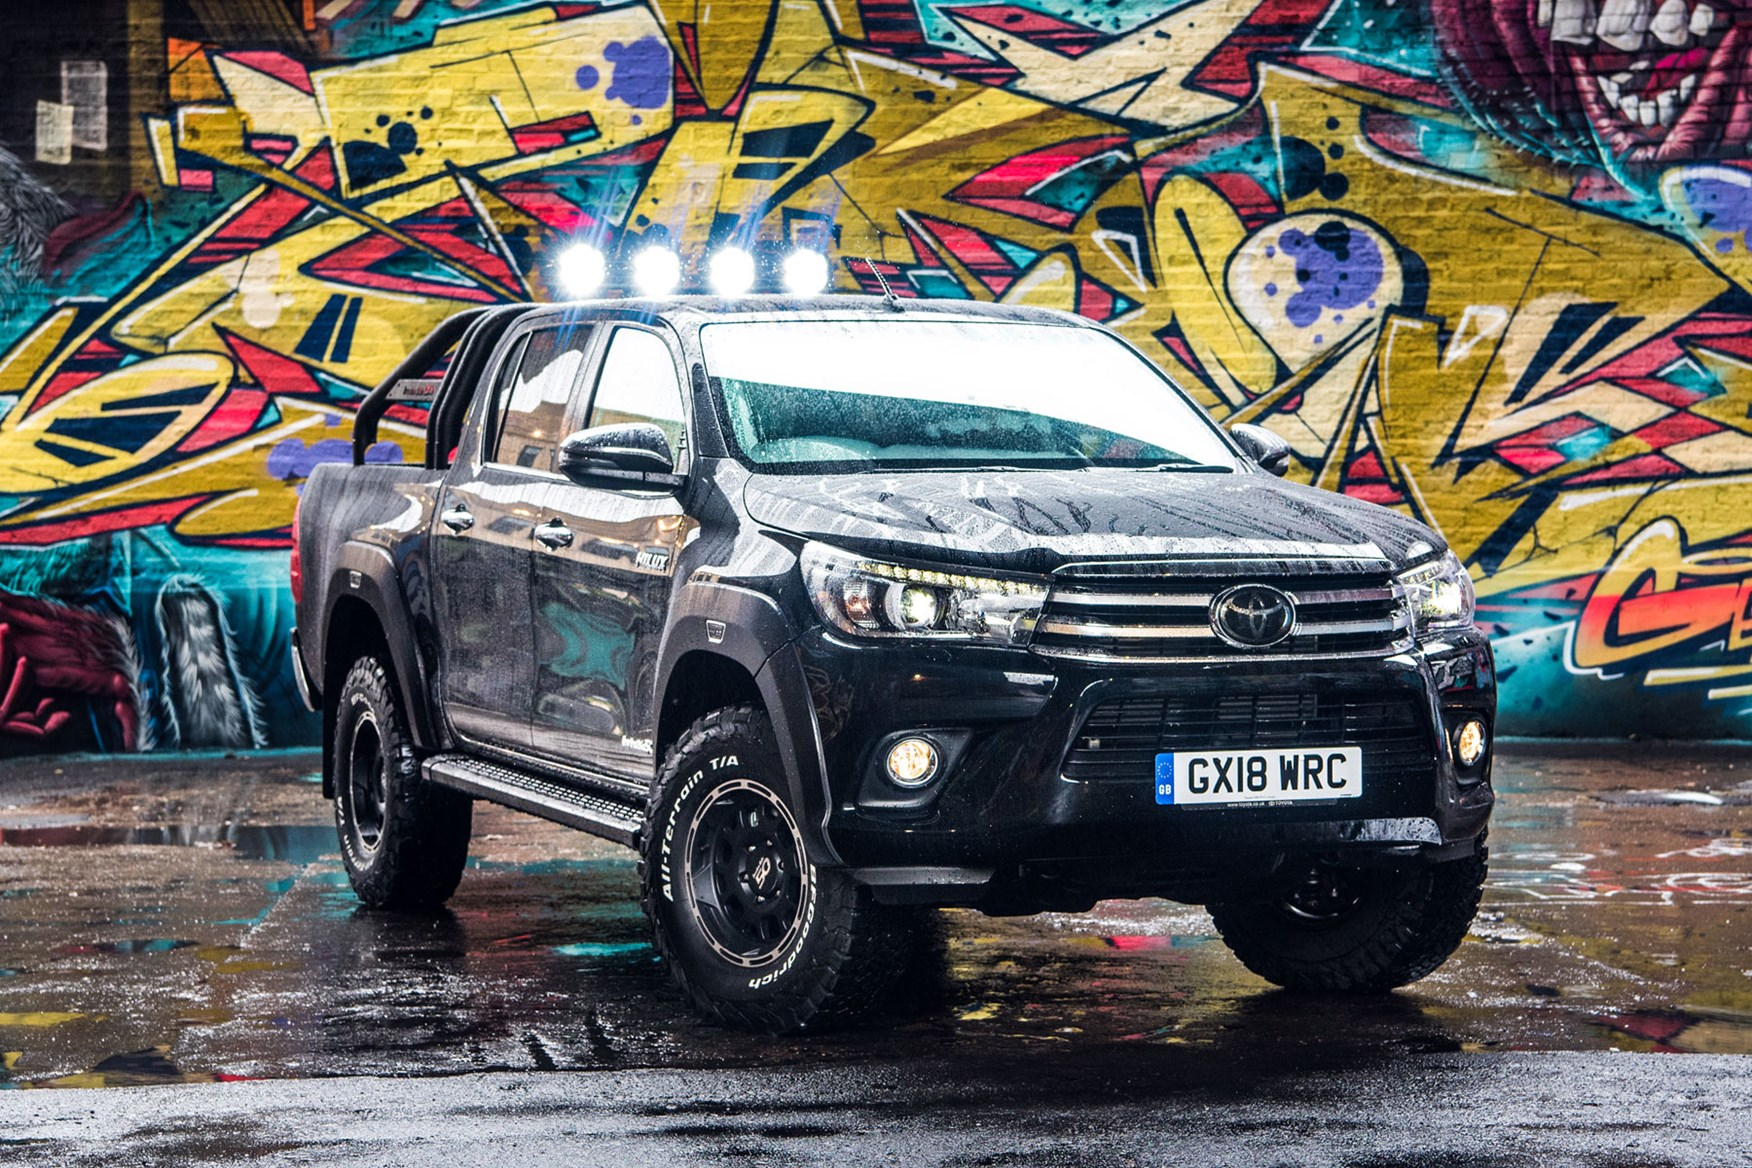 Toyota Hilux review - Invincible 50 special edition, black, front view, spotlights on